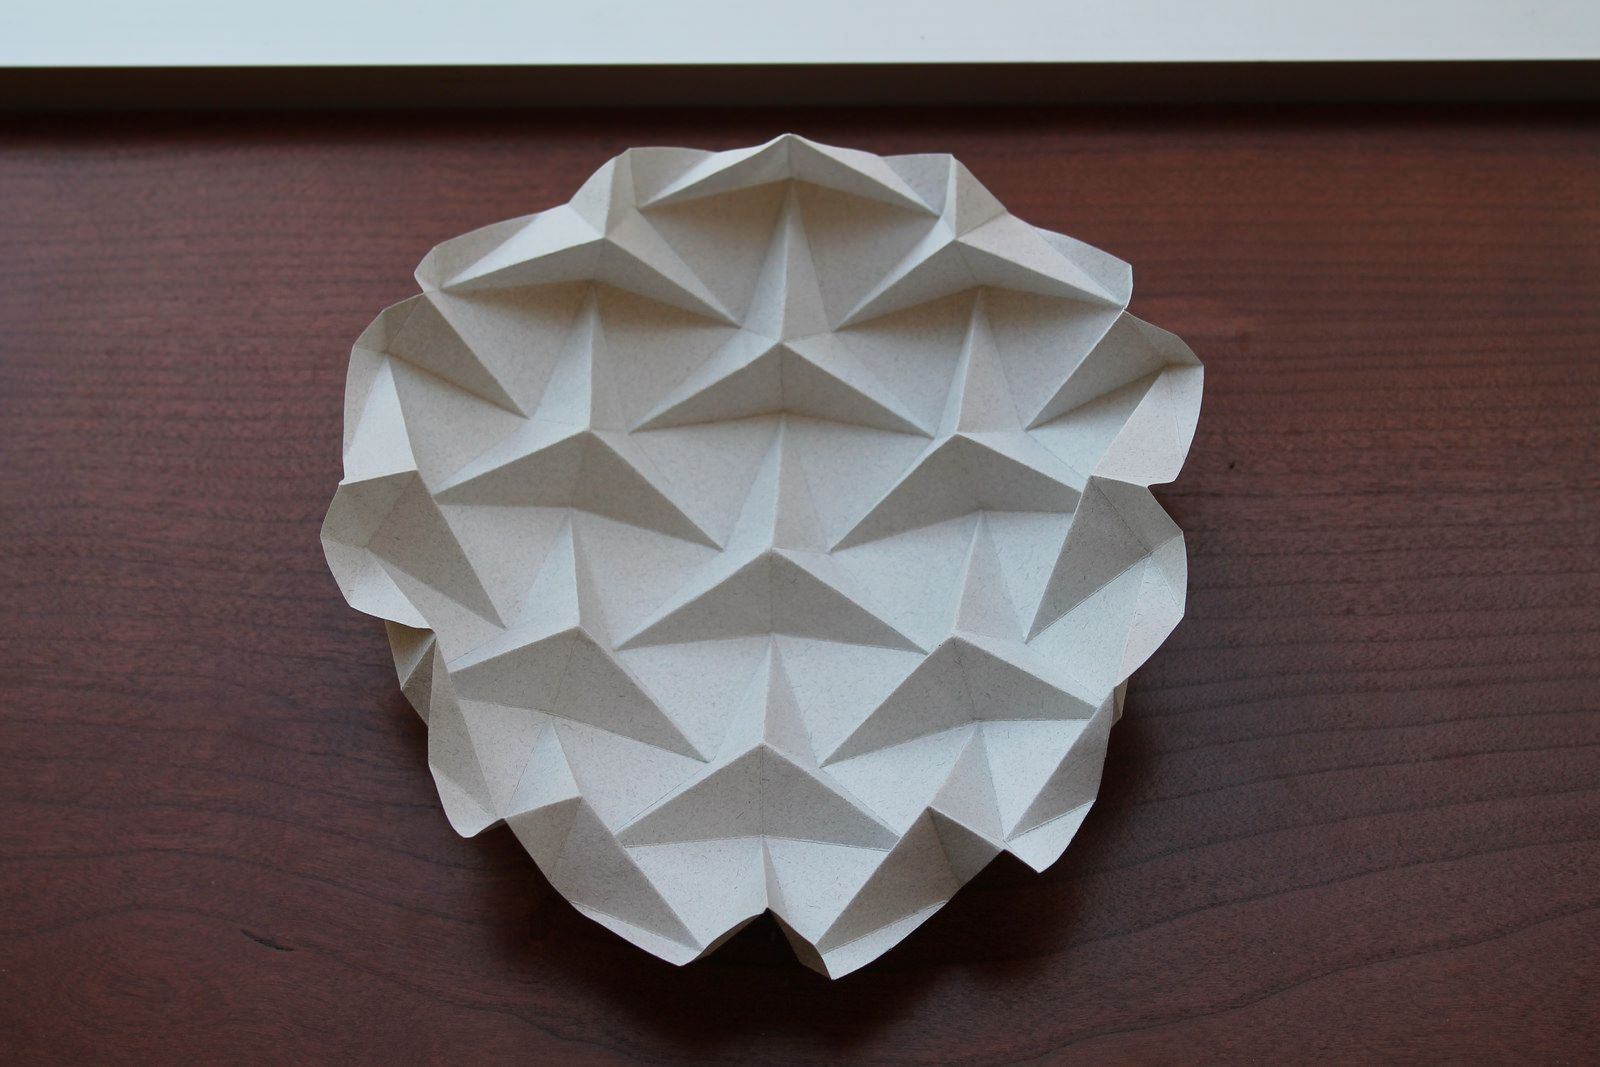 ron resch triangular tessellation | paper folding / paper structure